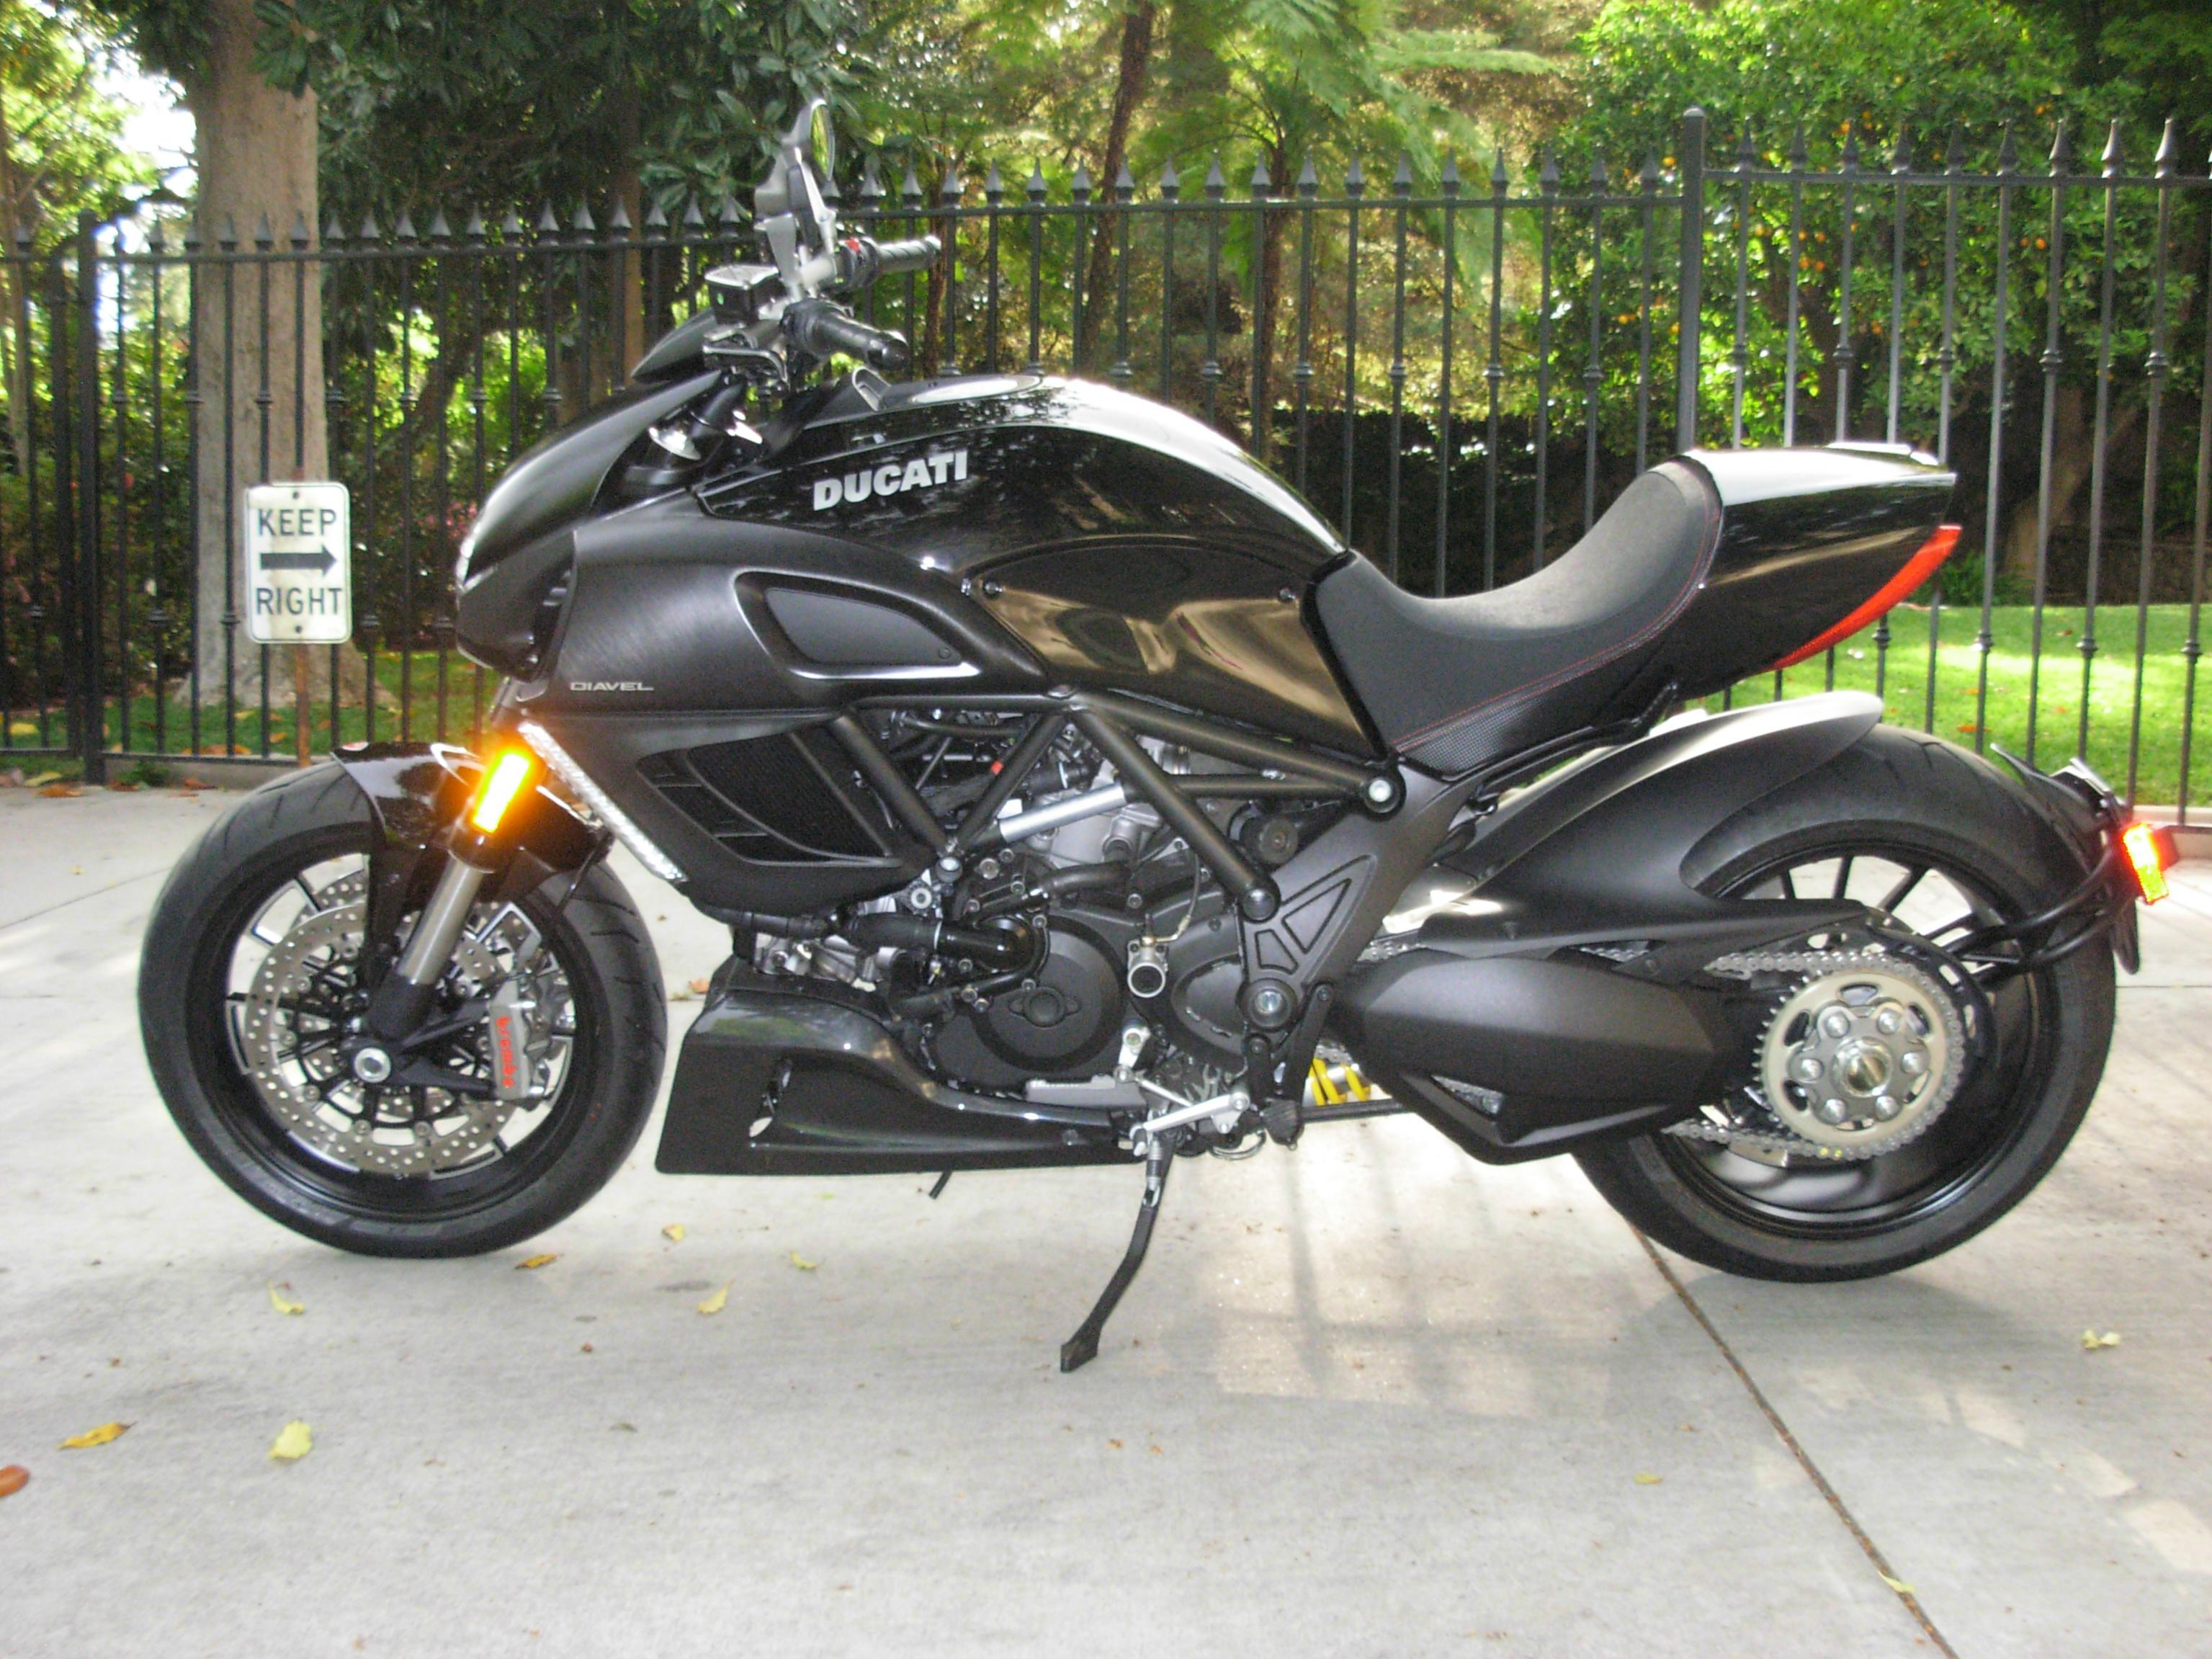 Diavel Picture Thread!-ducati-042411-005.jpg